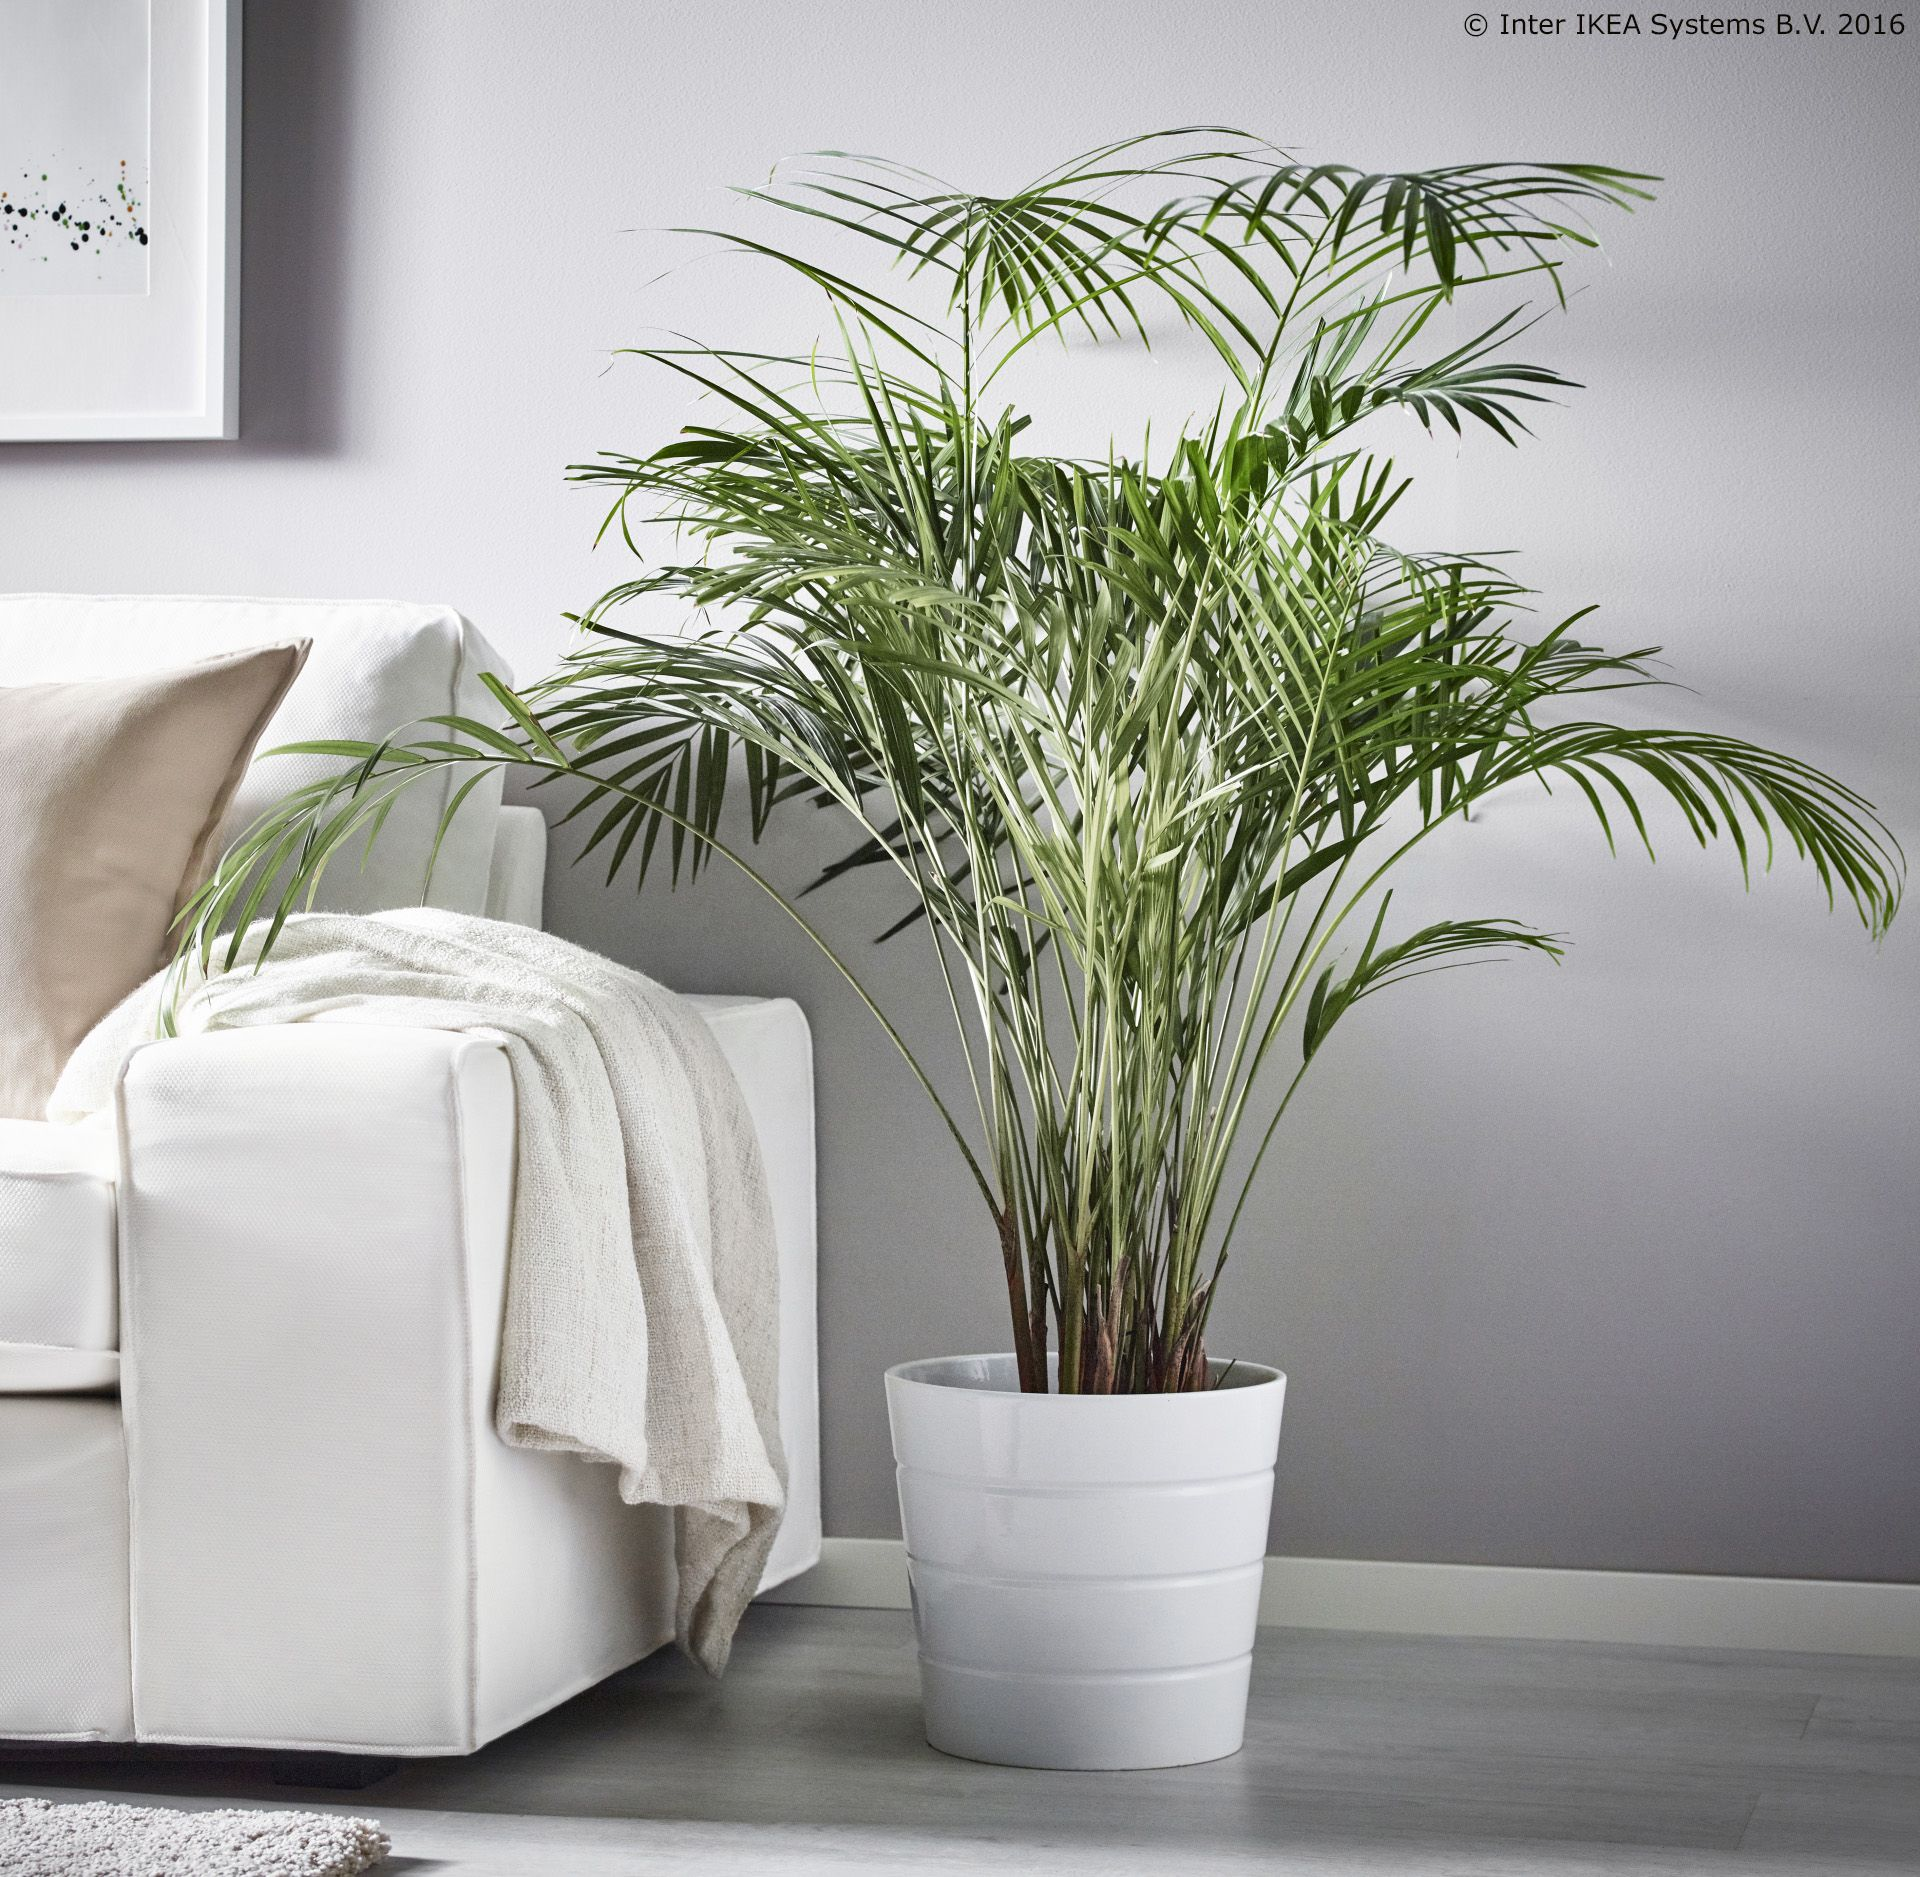 chrysalidocarpus lutescens lon anica areka palm ima predivne razgranate listove a i. Black Bedroom Furniture Sets. Home Design Ideas